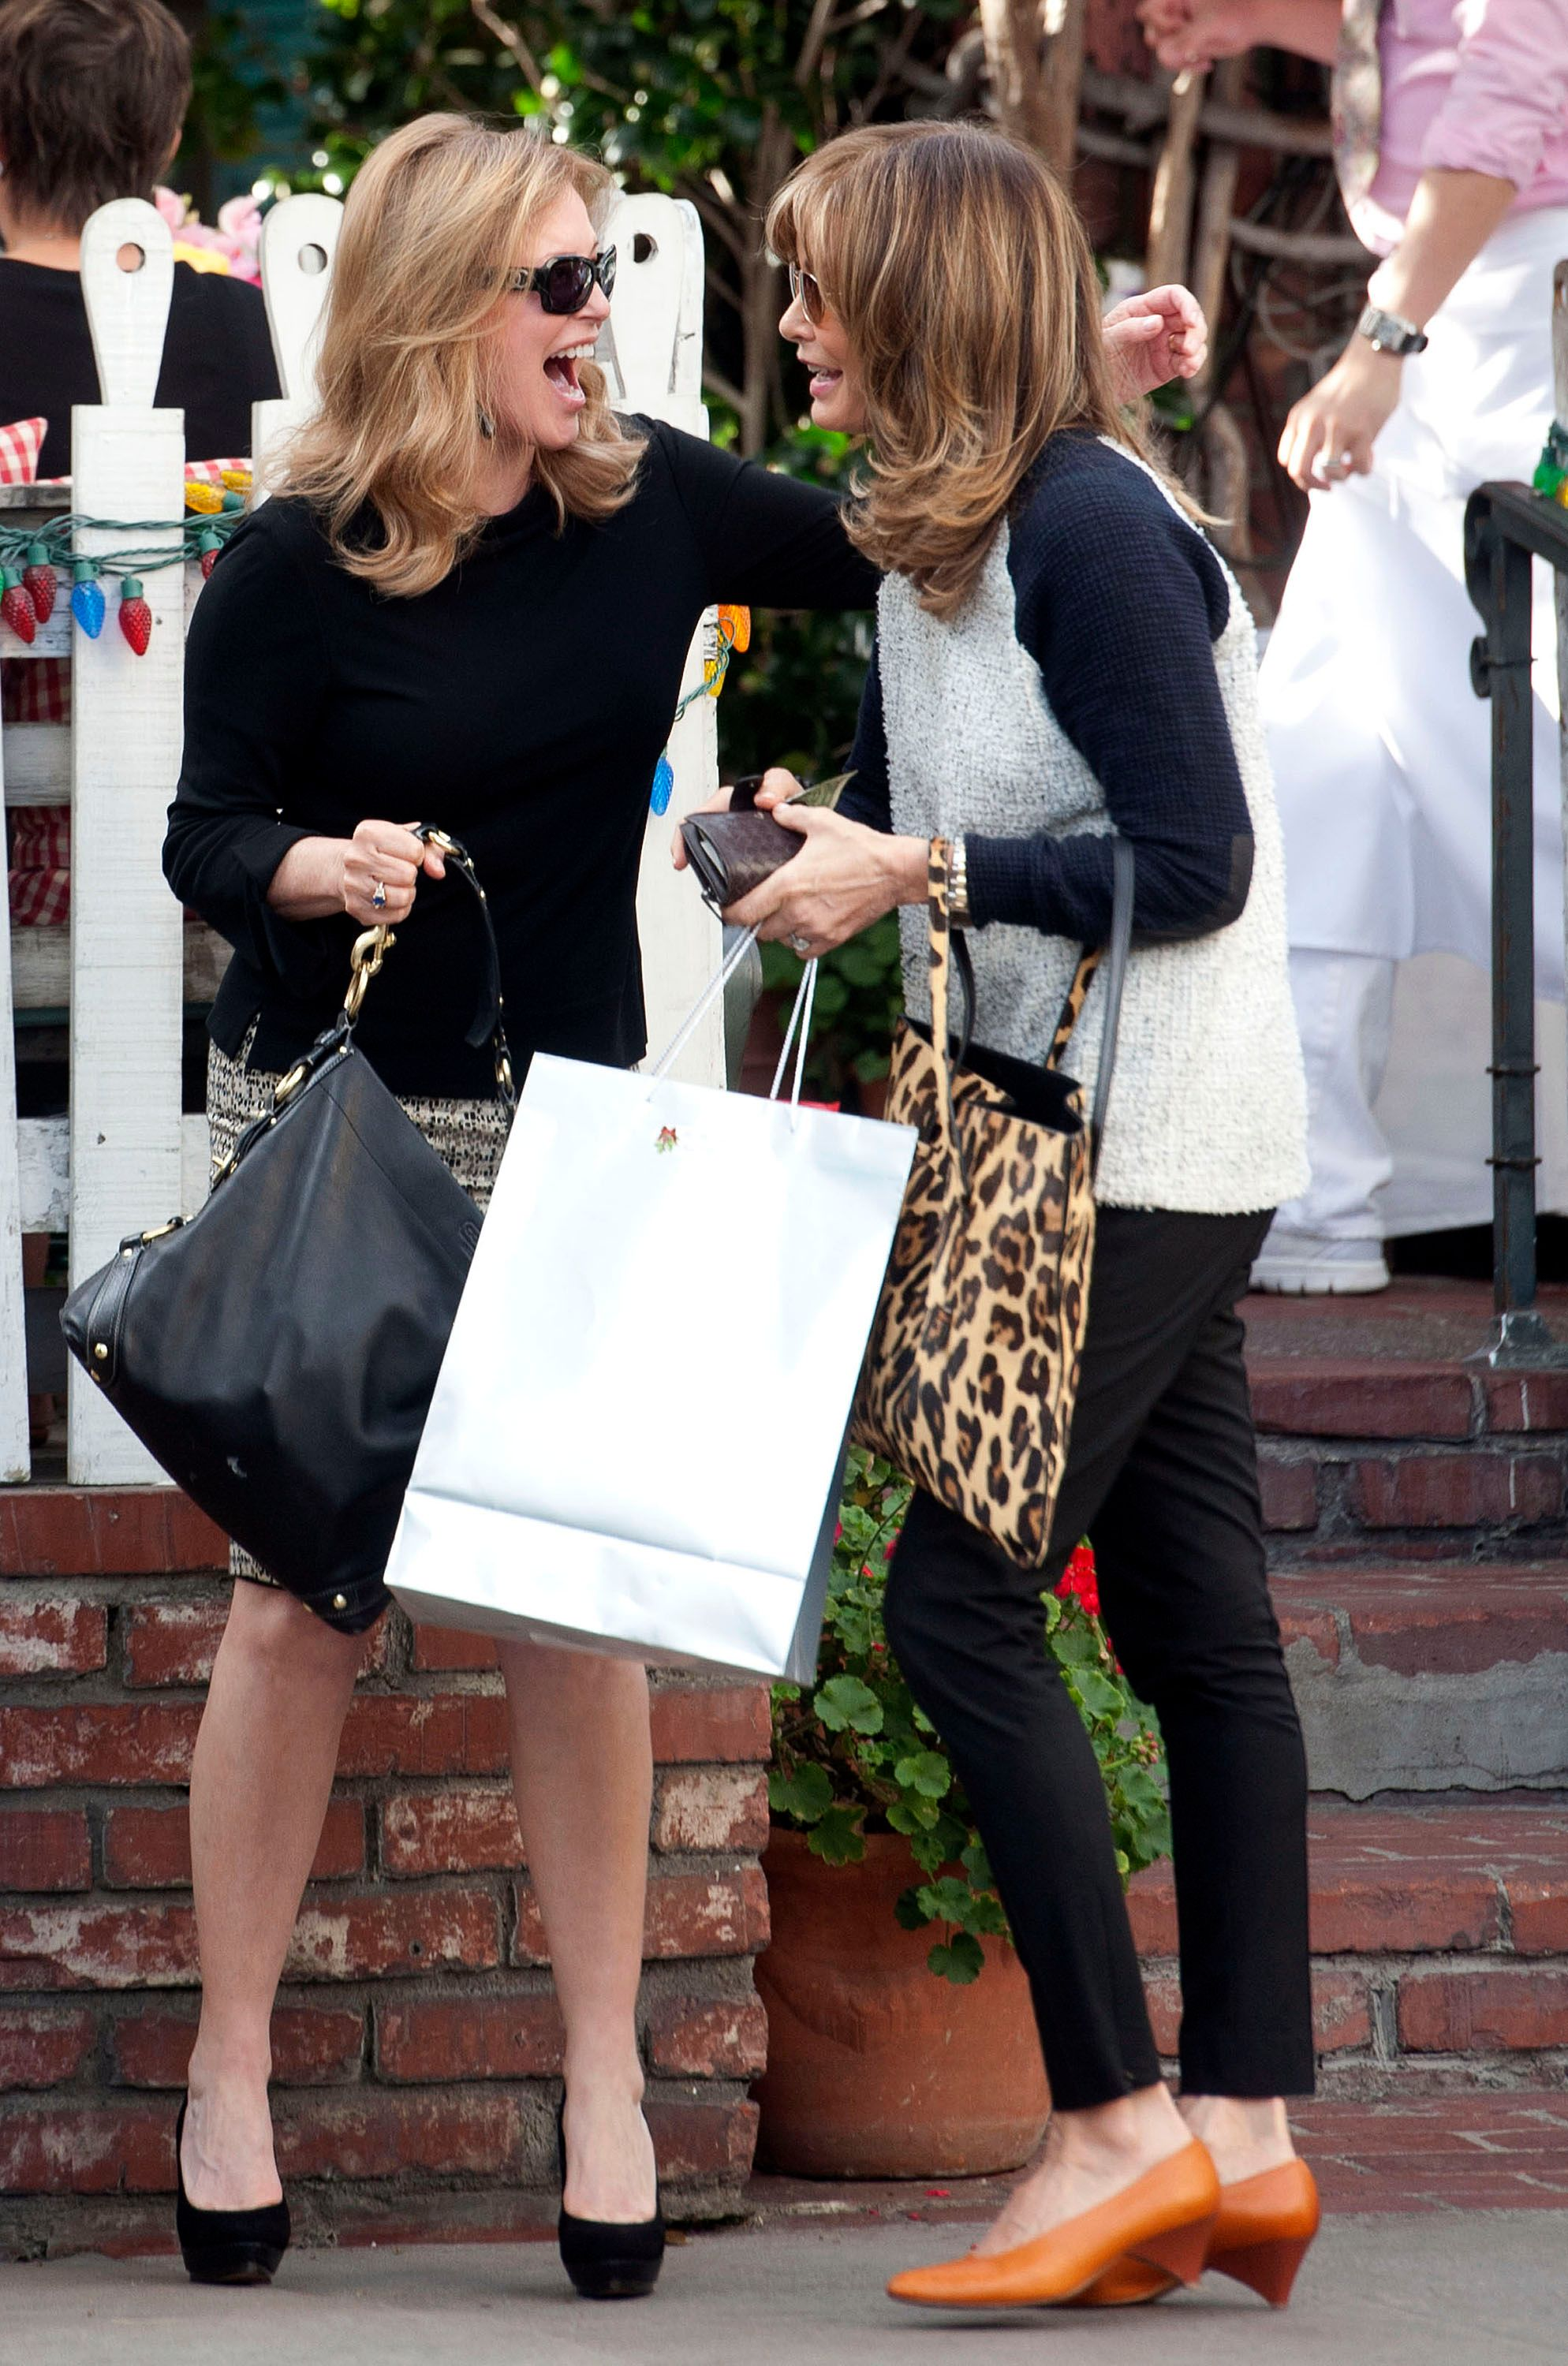 Jaclyn Smith and Cheryl Ladd are seen having lunch at The Ivy on January 22, 2014 | Photo: Getty Images